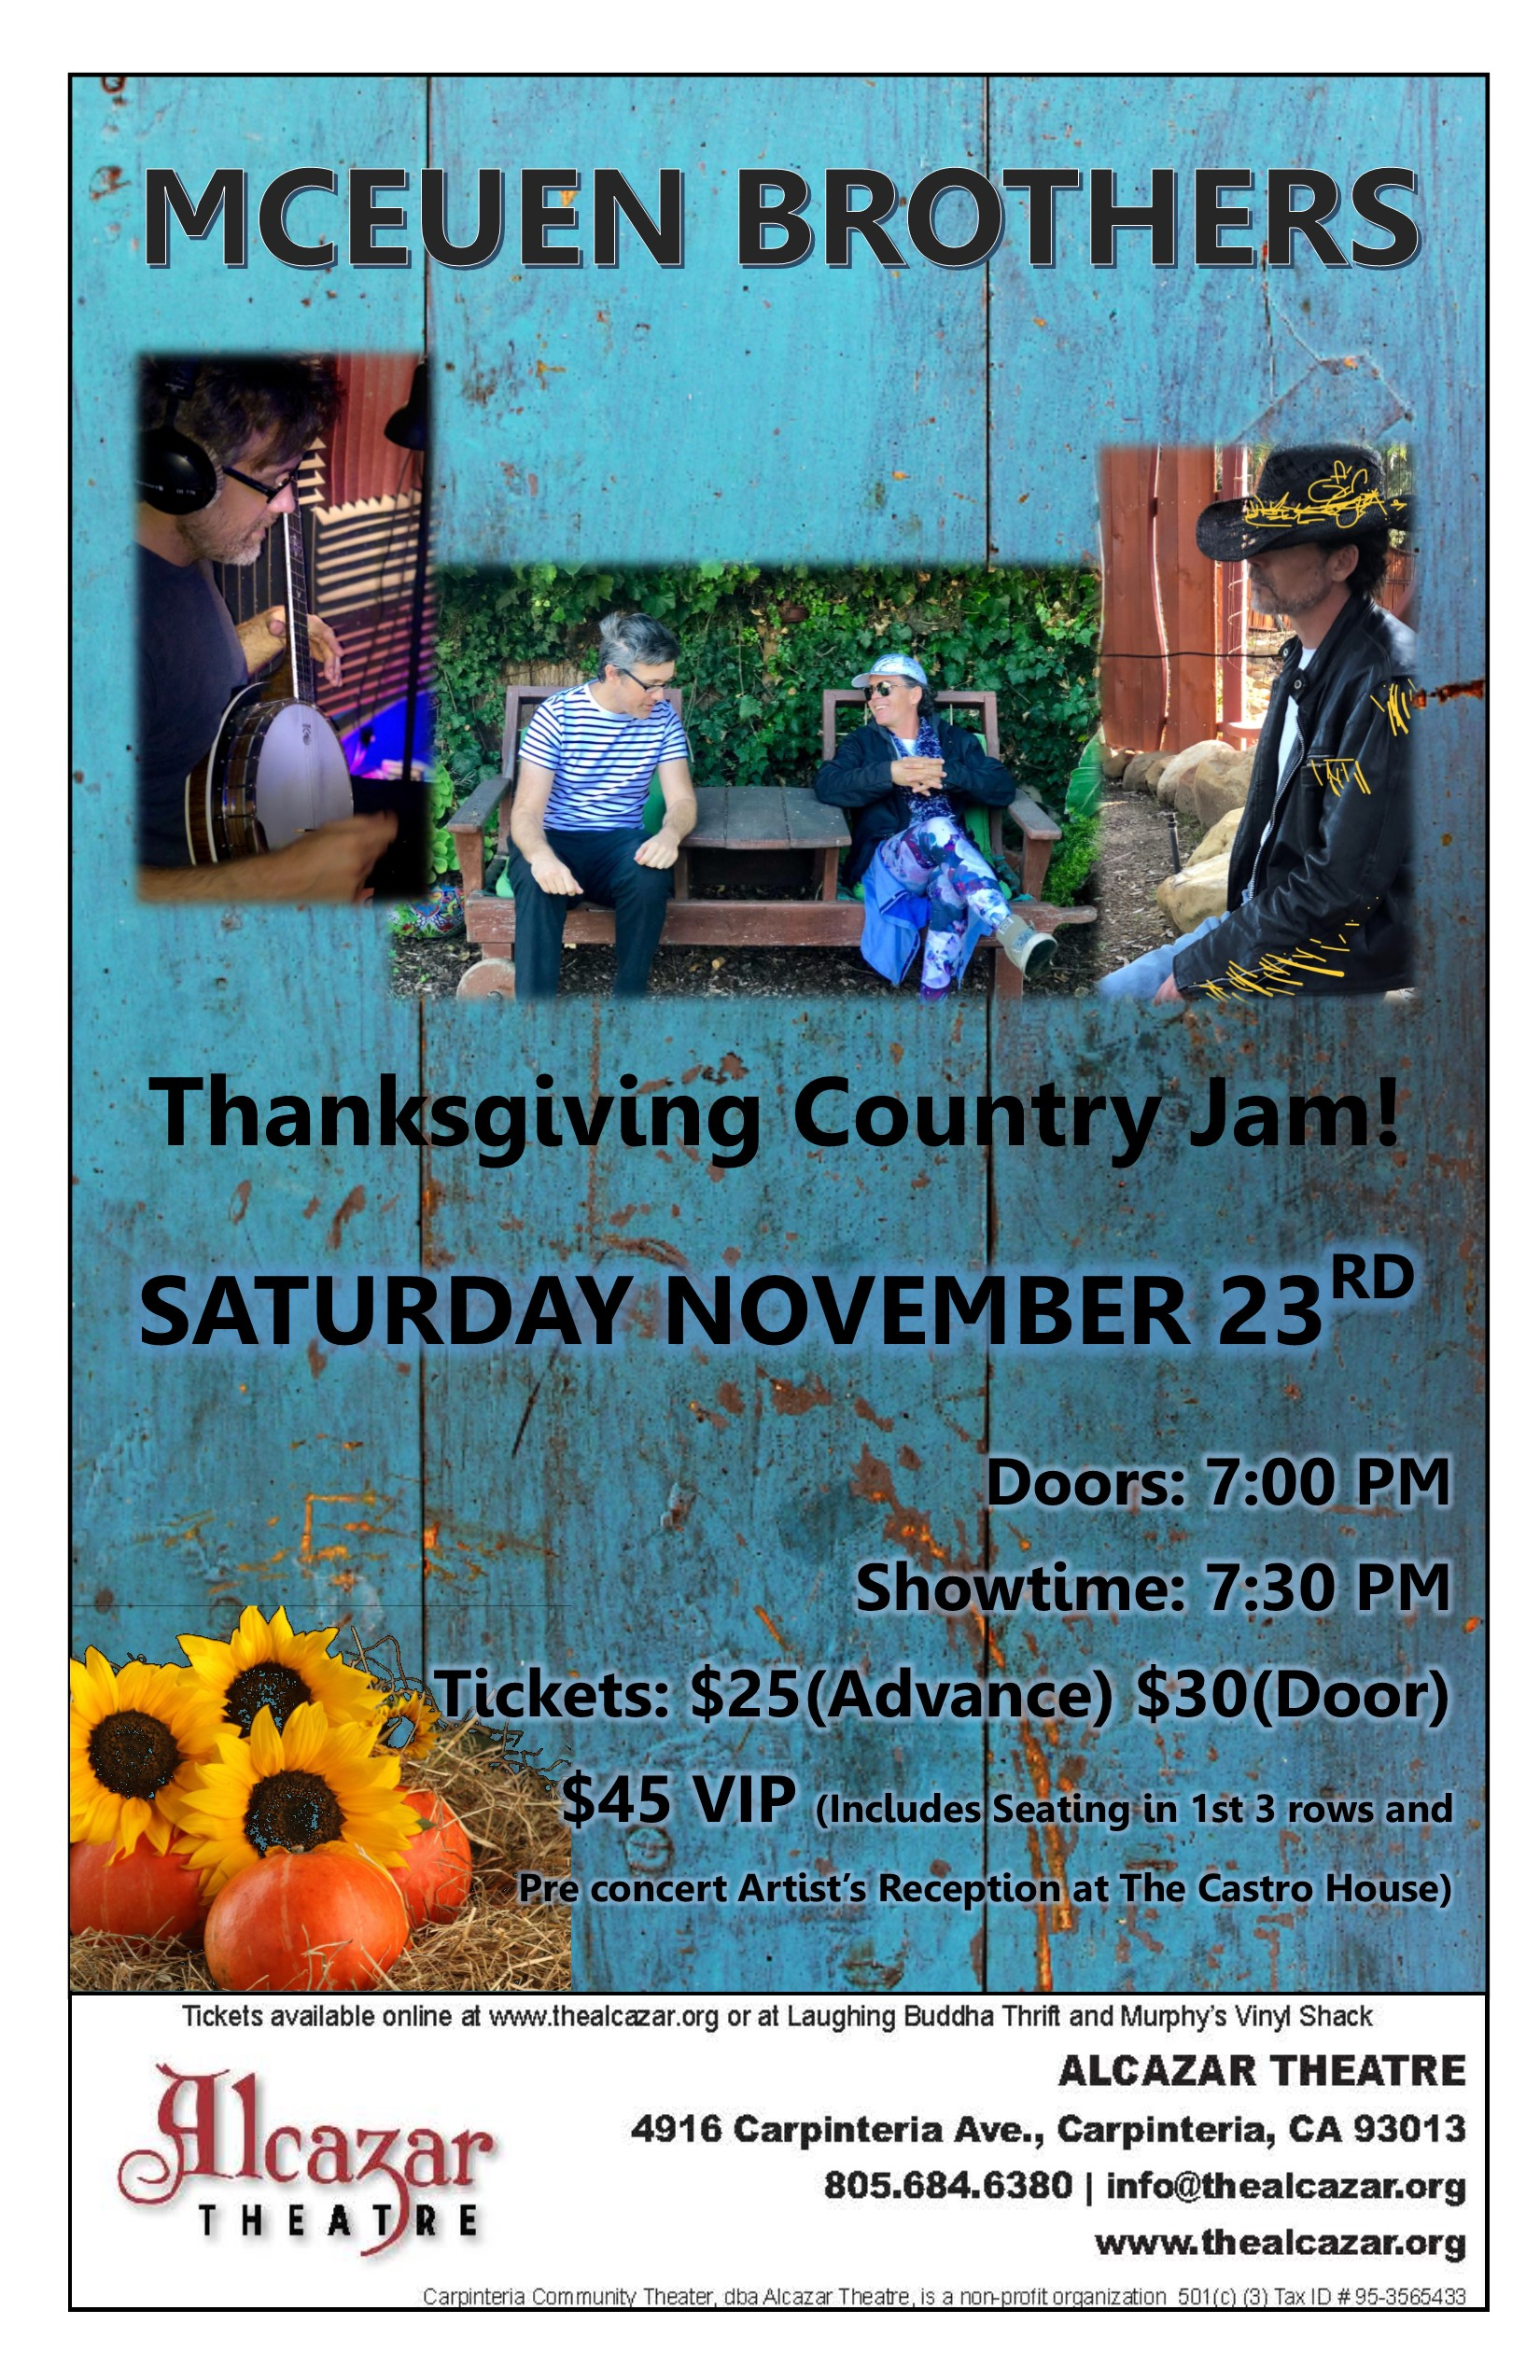 McEuen Brothers: Thanksgiving Country Jam!